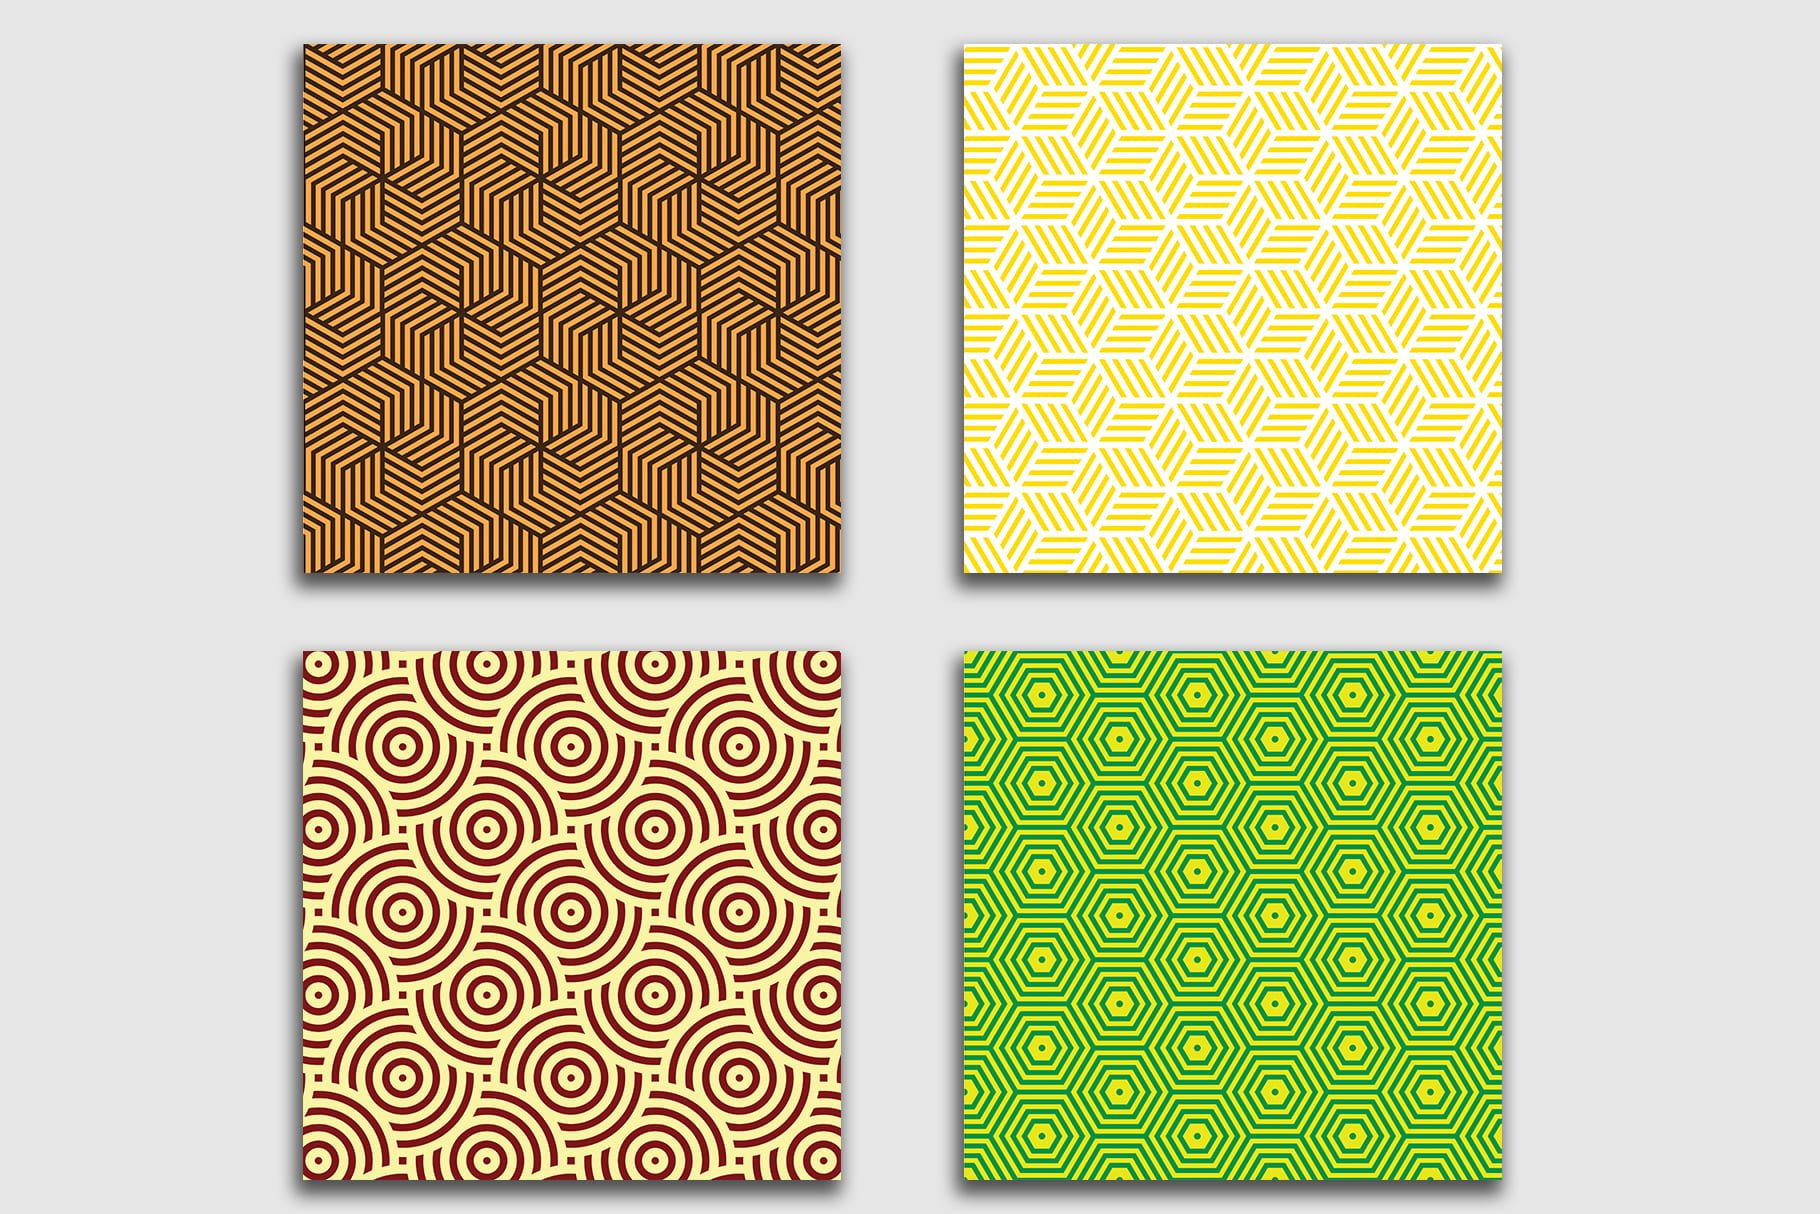 Stylish tiles with geometric print. Both bright colors and delicate ones are presented here.